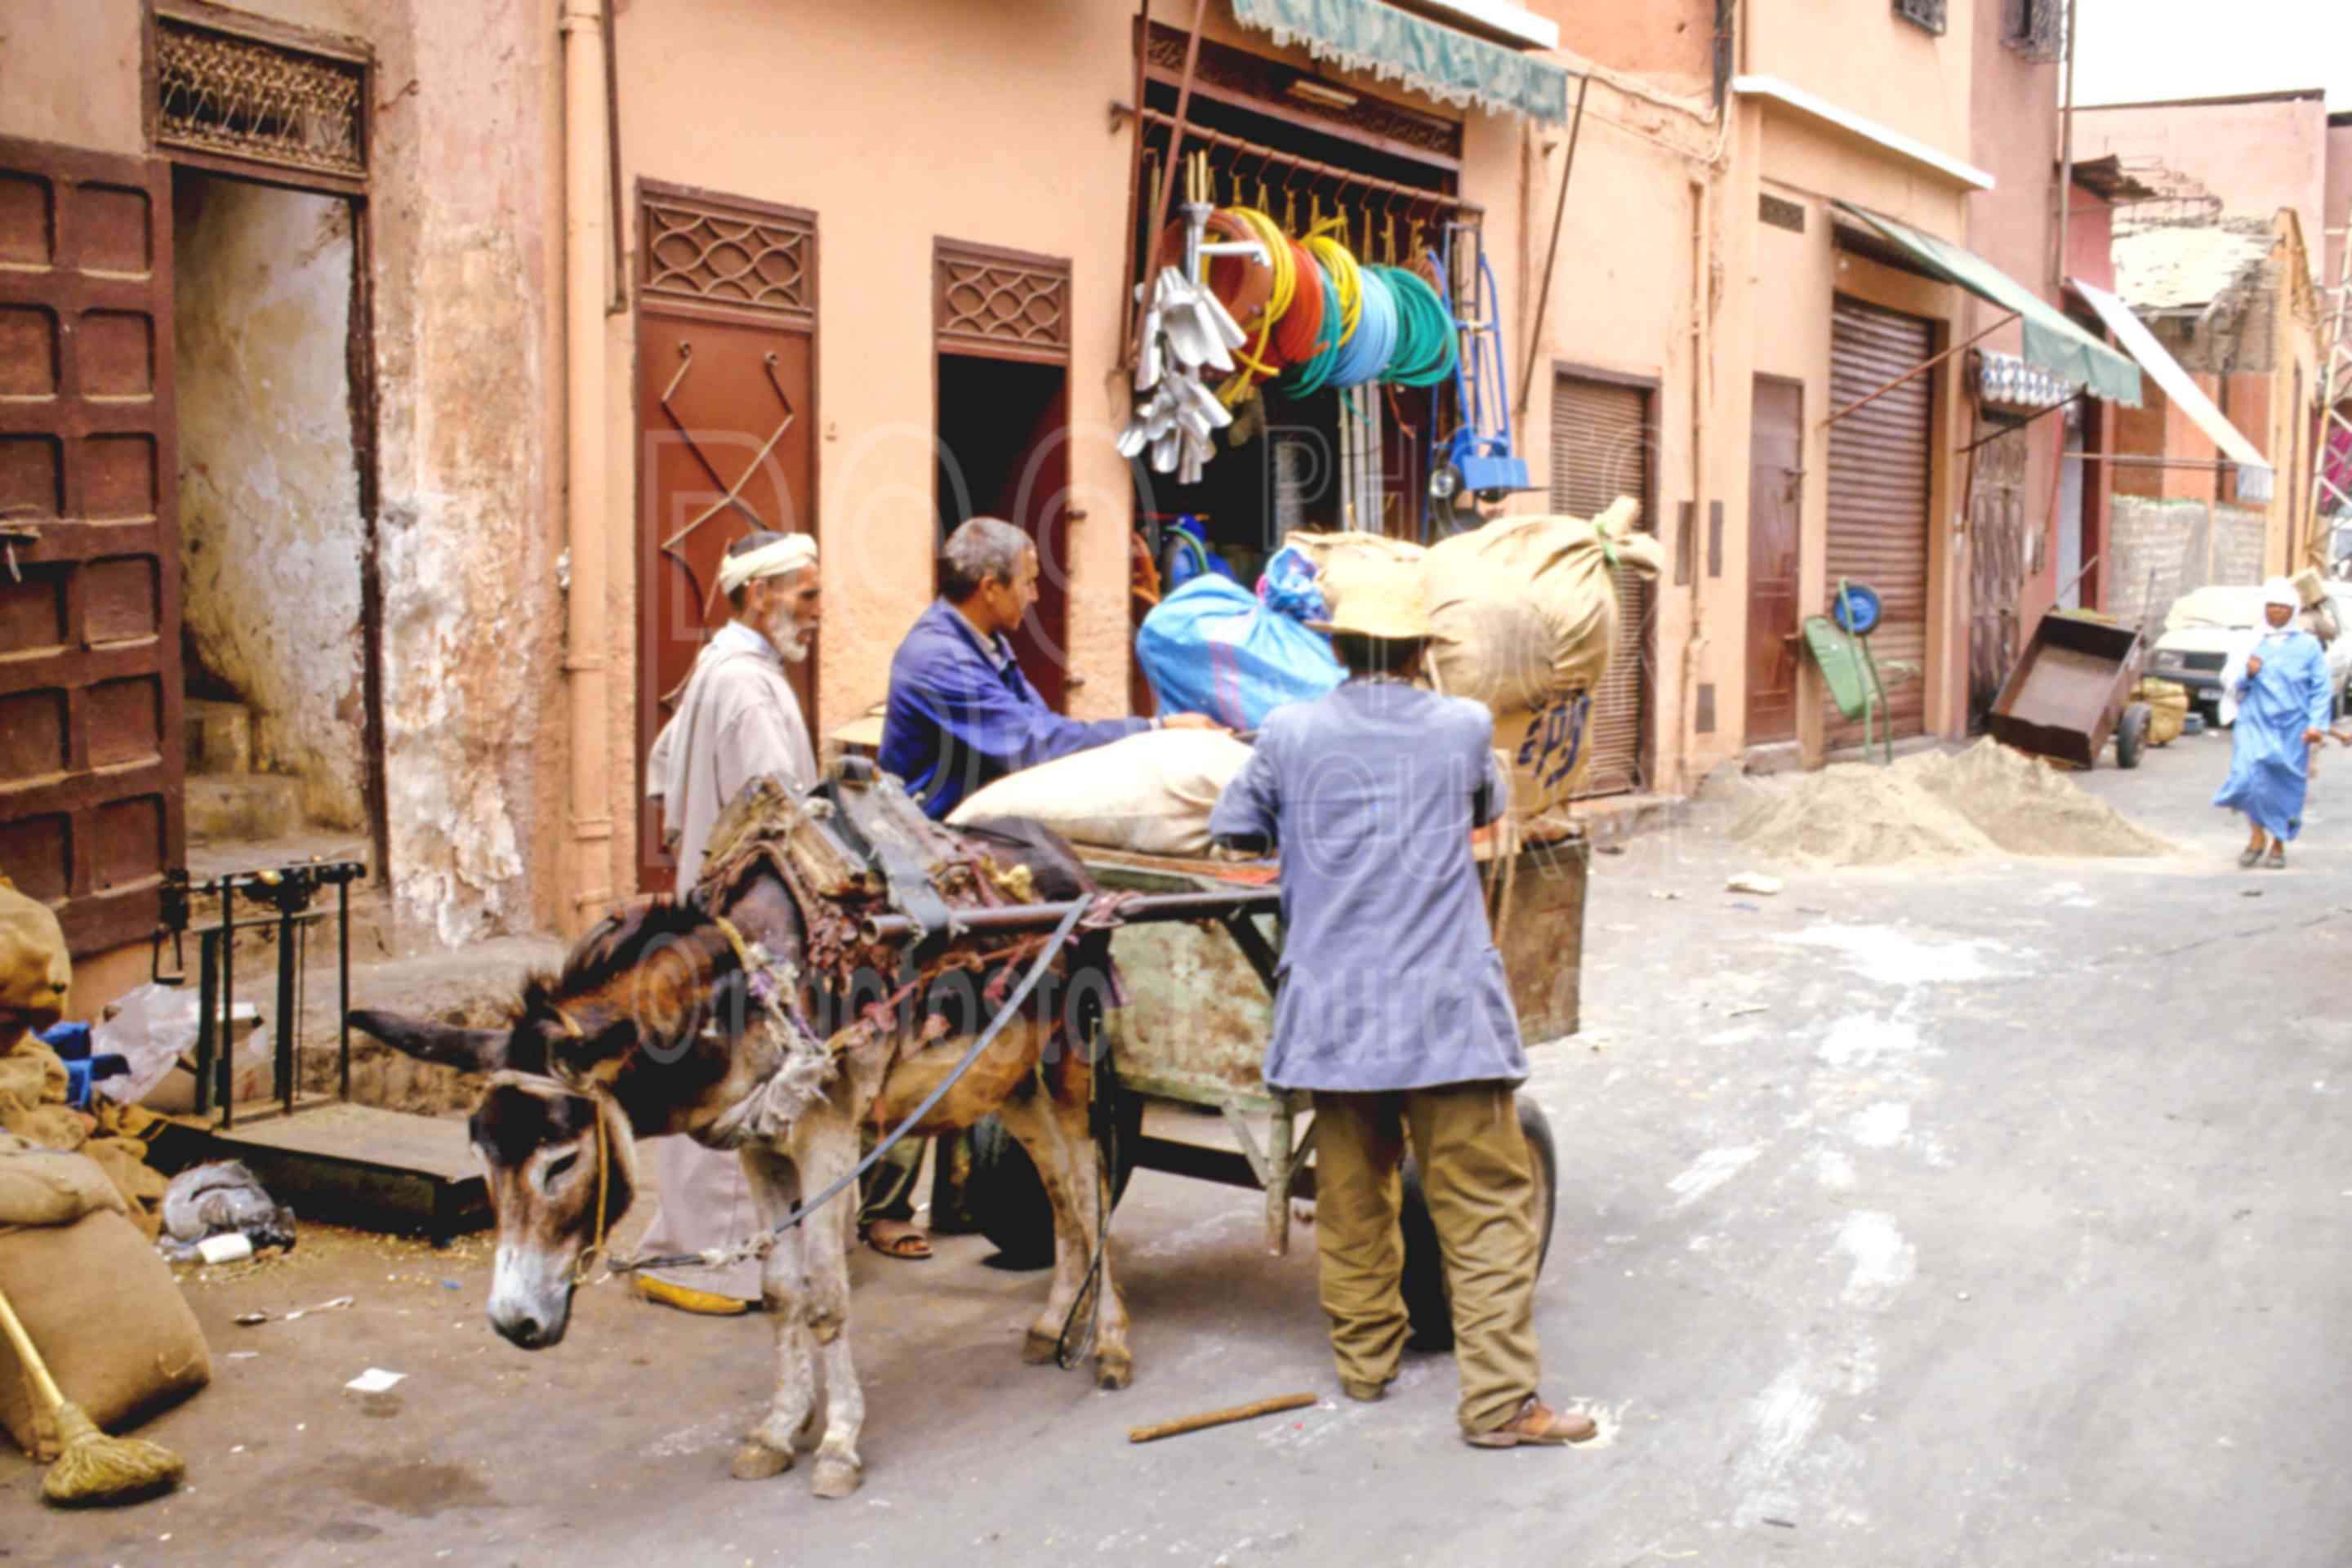 Men and Donkey,animal,donkey,market,medina,mens,work,worker,morocco markets